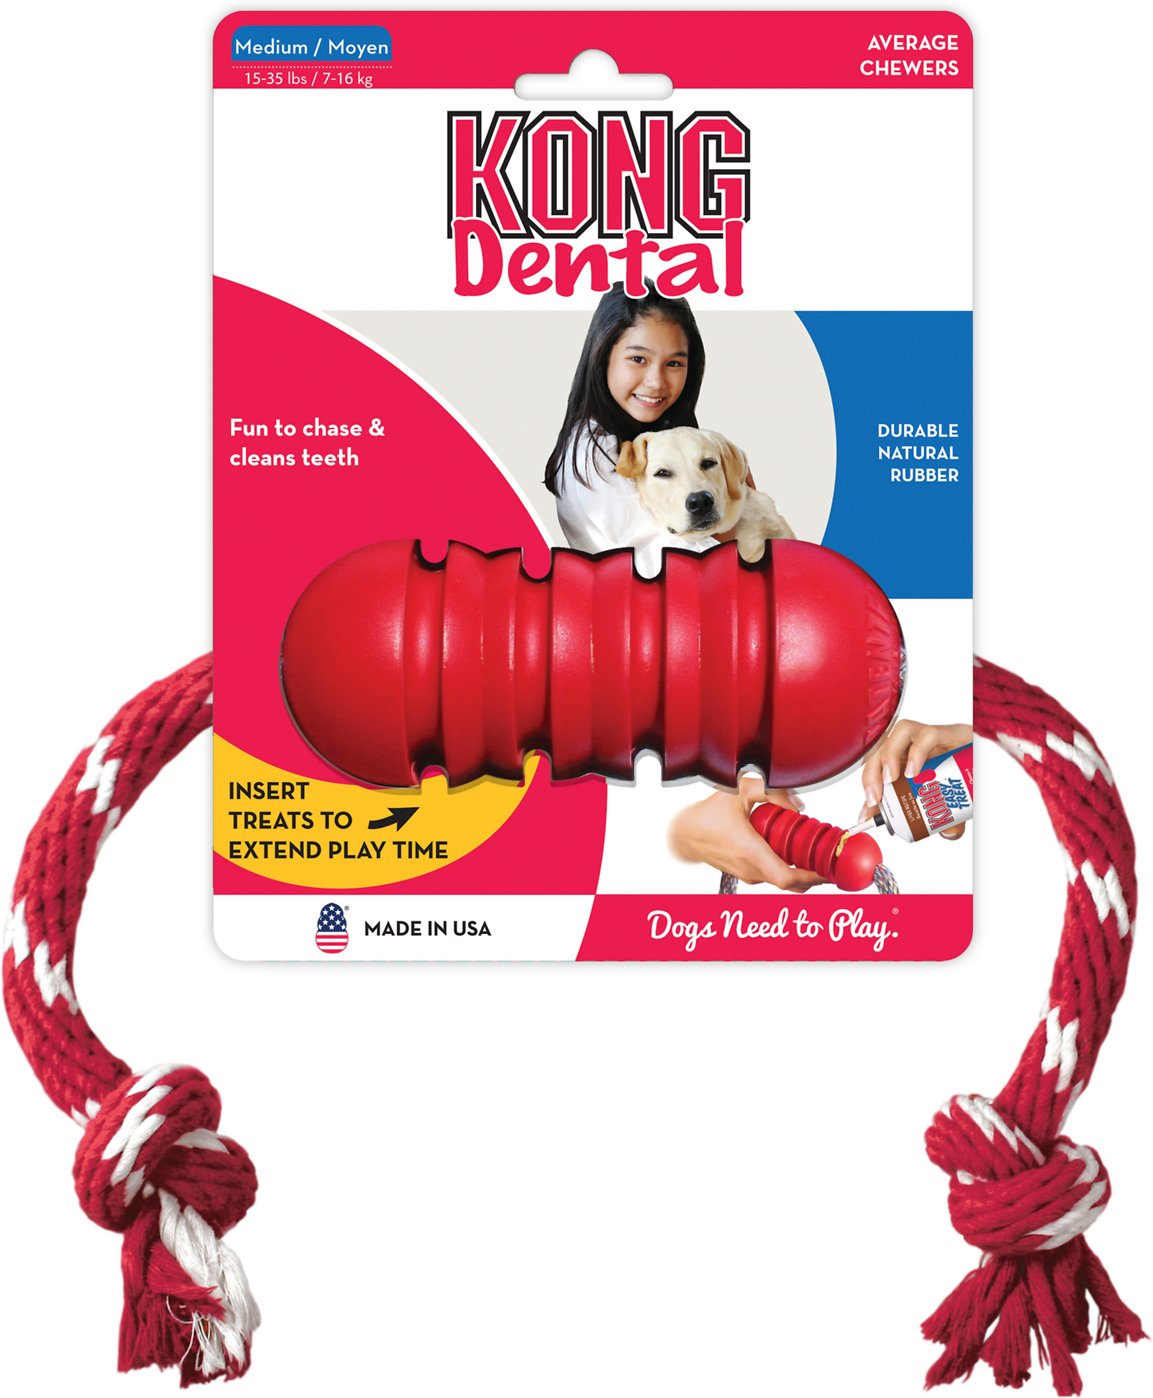 KONG Dental with Rope Dog Toy Image